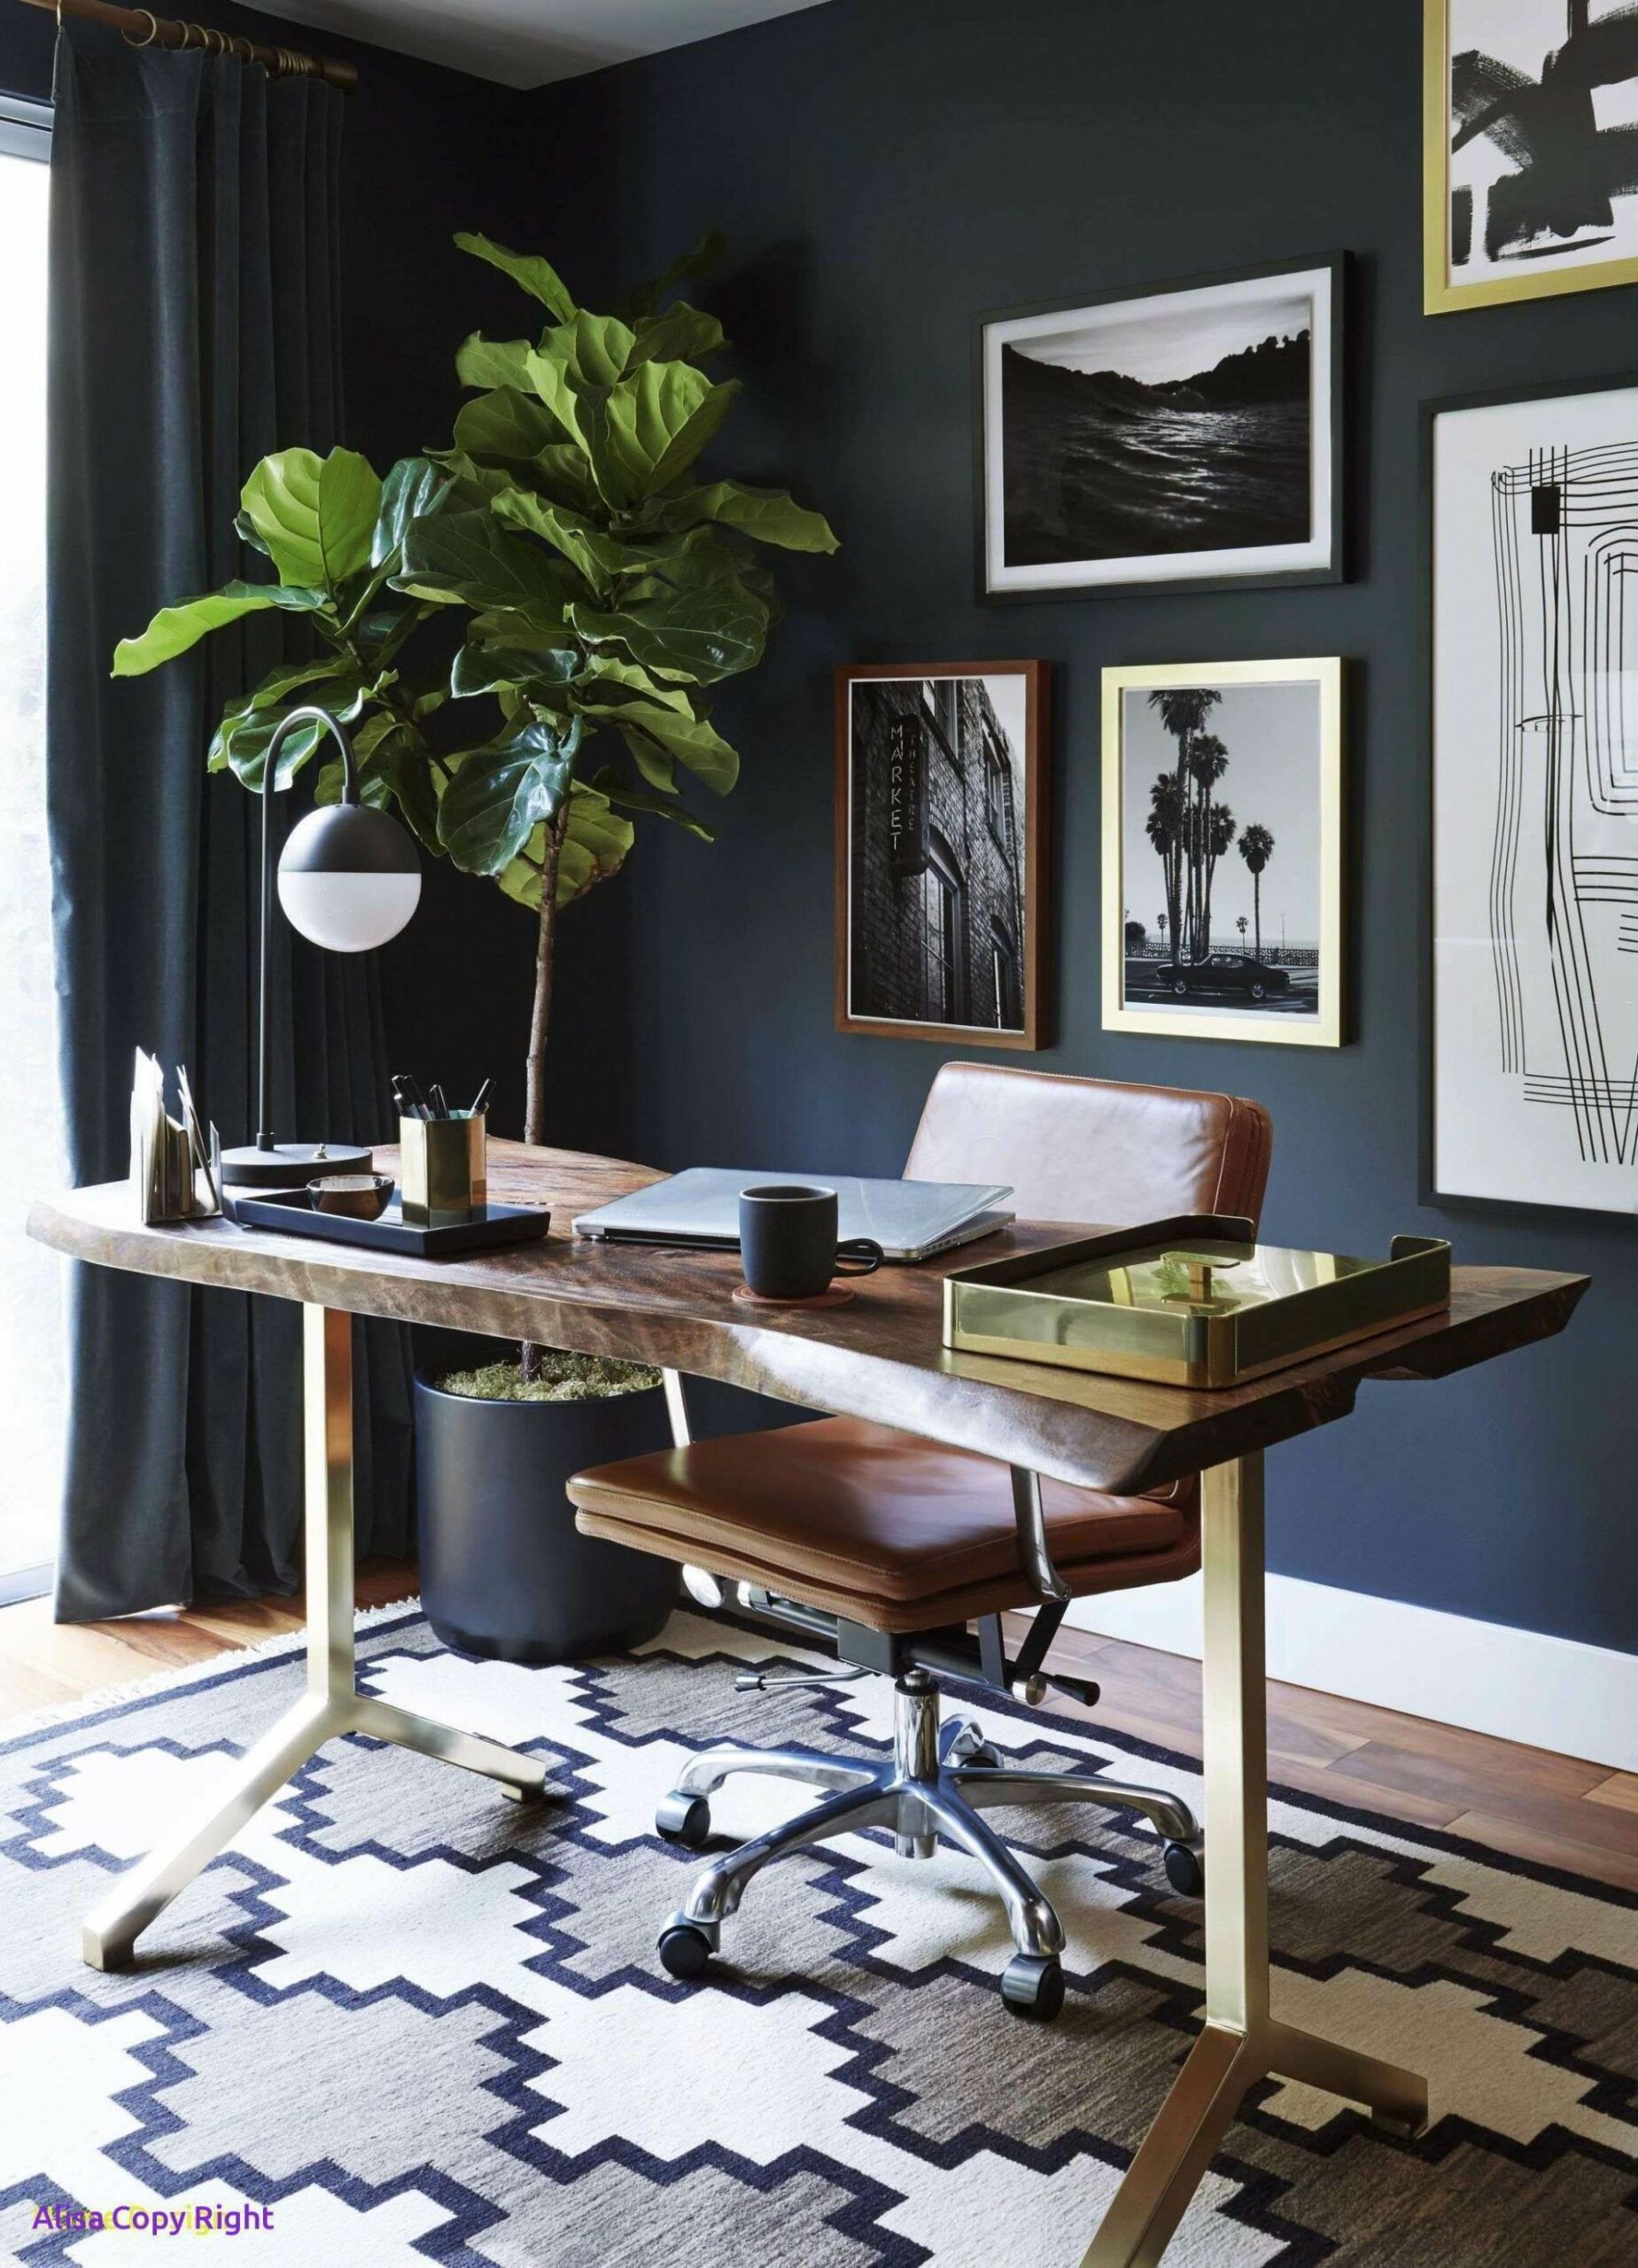 Pin by Marien Katigbak on Design Inspiration | Home office decor ...